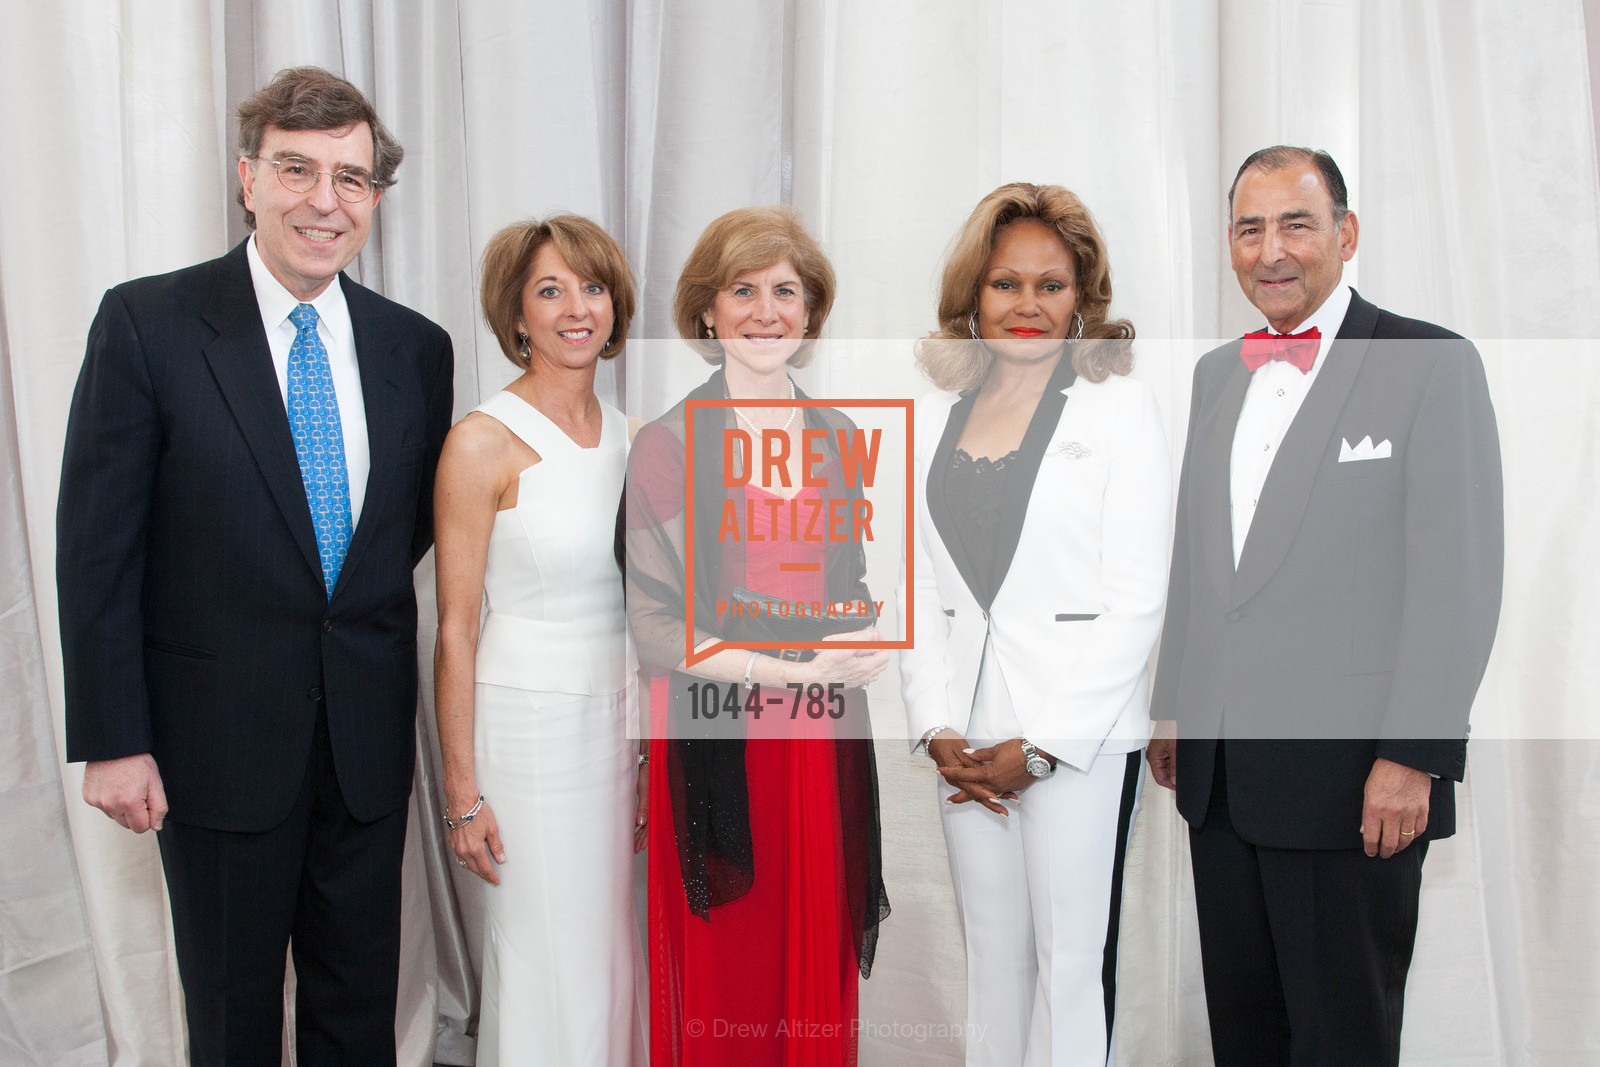 Neal Litvack, Teresa Briggs, Gail McGovern, Janice Bryant Howroyd, Alexander Mehran, 2015 RED CROSS Gala, US, April 12th, 2015,Drew Altizer, Drew Altizer Photography, full-service agency, private events, San Francisco photographer, photographer california